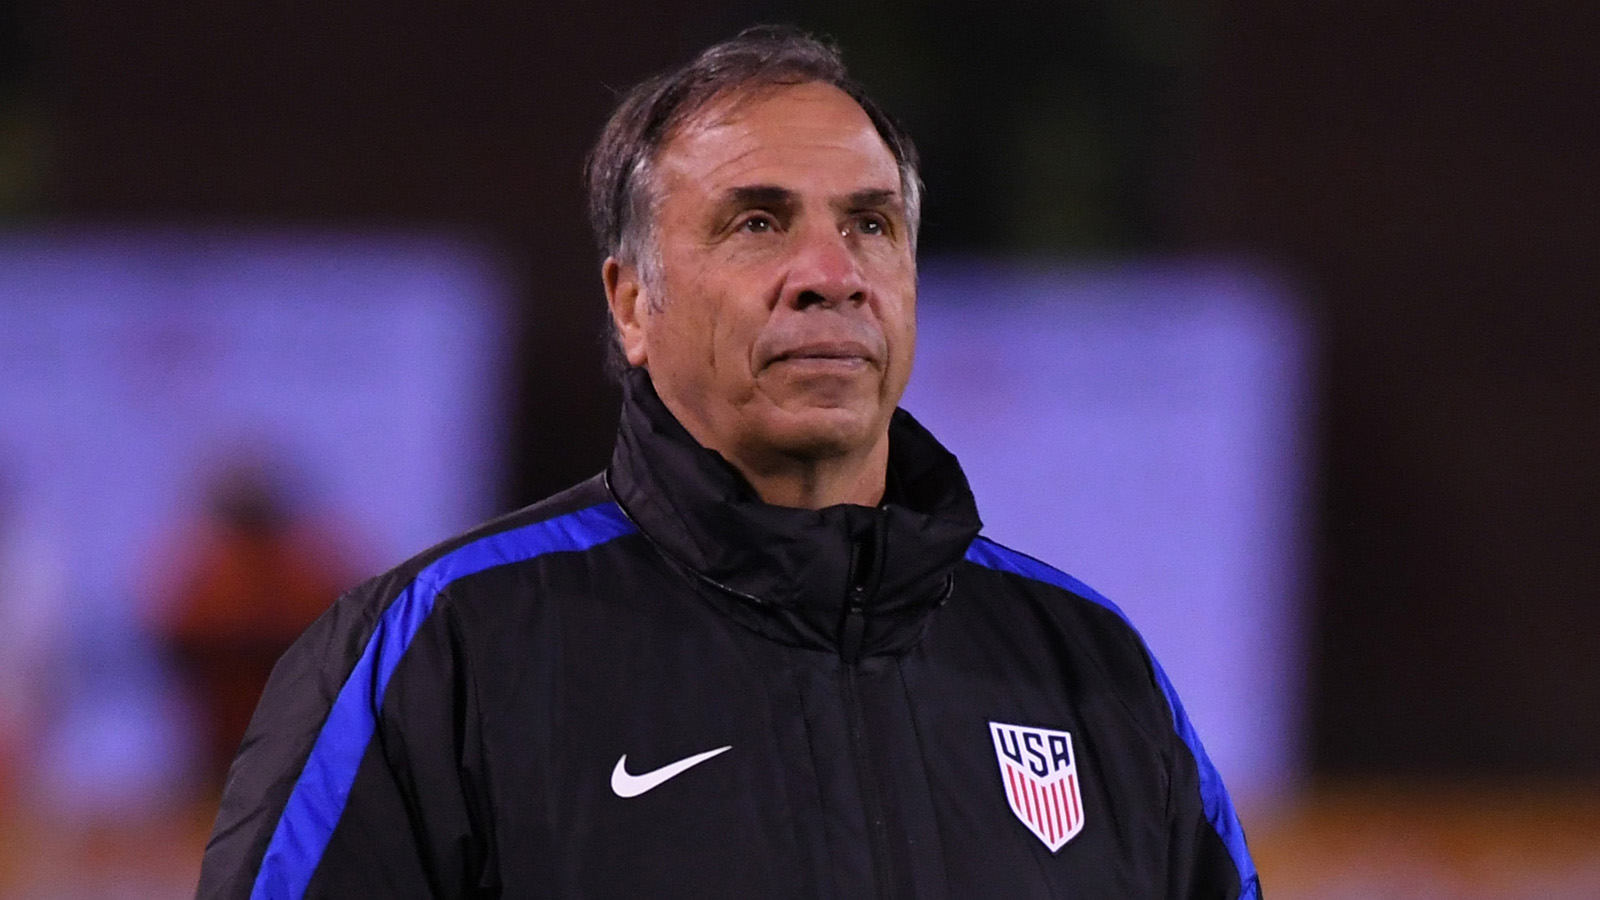 Feb 3, 2017; Chattanooga, TN, USA; United States head coach Bruce Arena prior to the international friendly game against Jamaica at Finley Stadium. Mandatory Credit: Christopher Hanewinckel-USA TODAY Sports